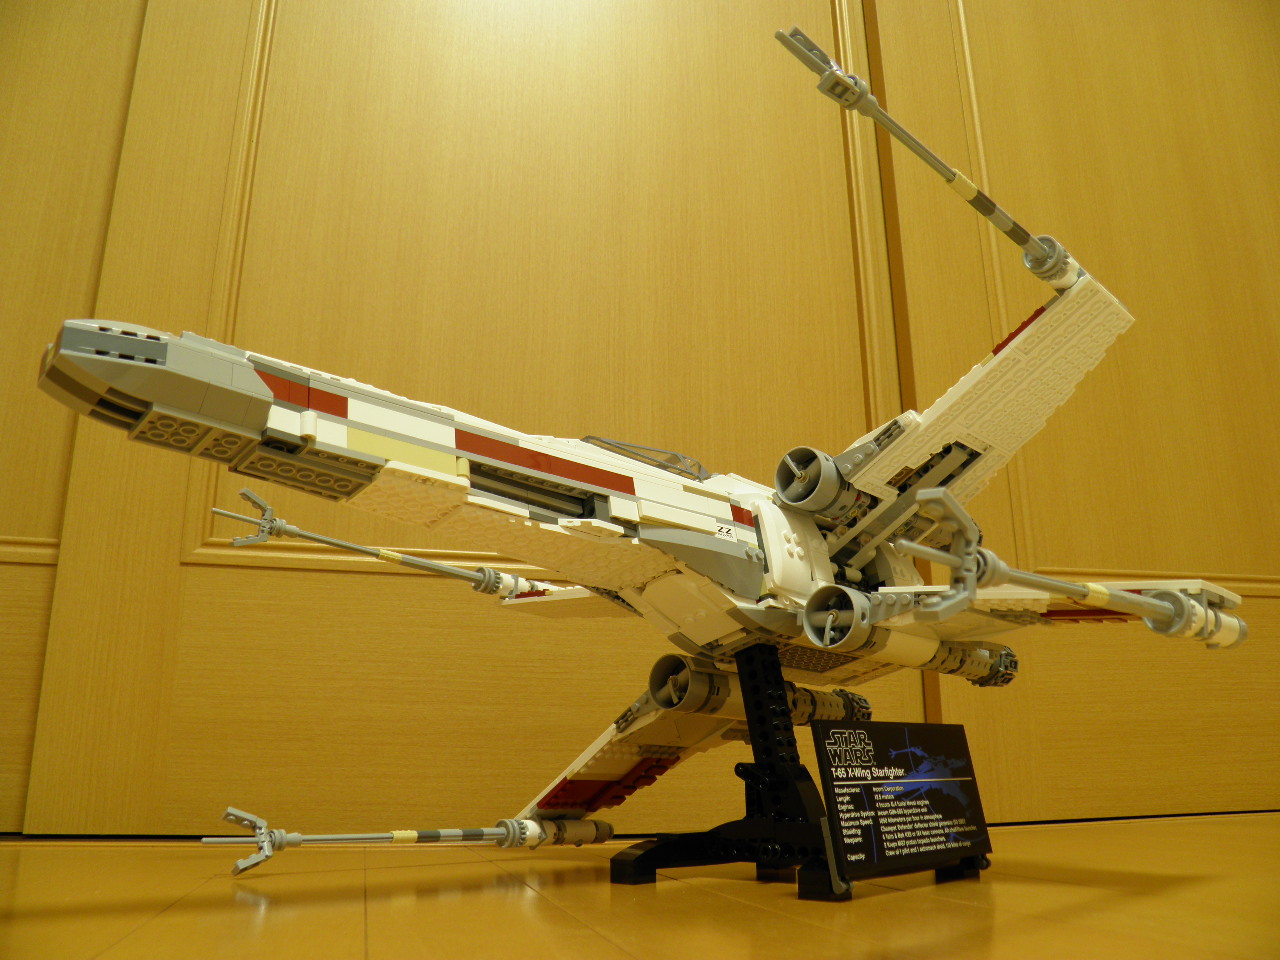 LEGOレビュー 10240 X,Wing Star fighter 編. 052_20130807211458e09